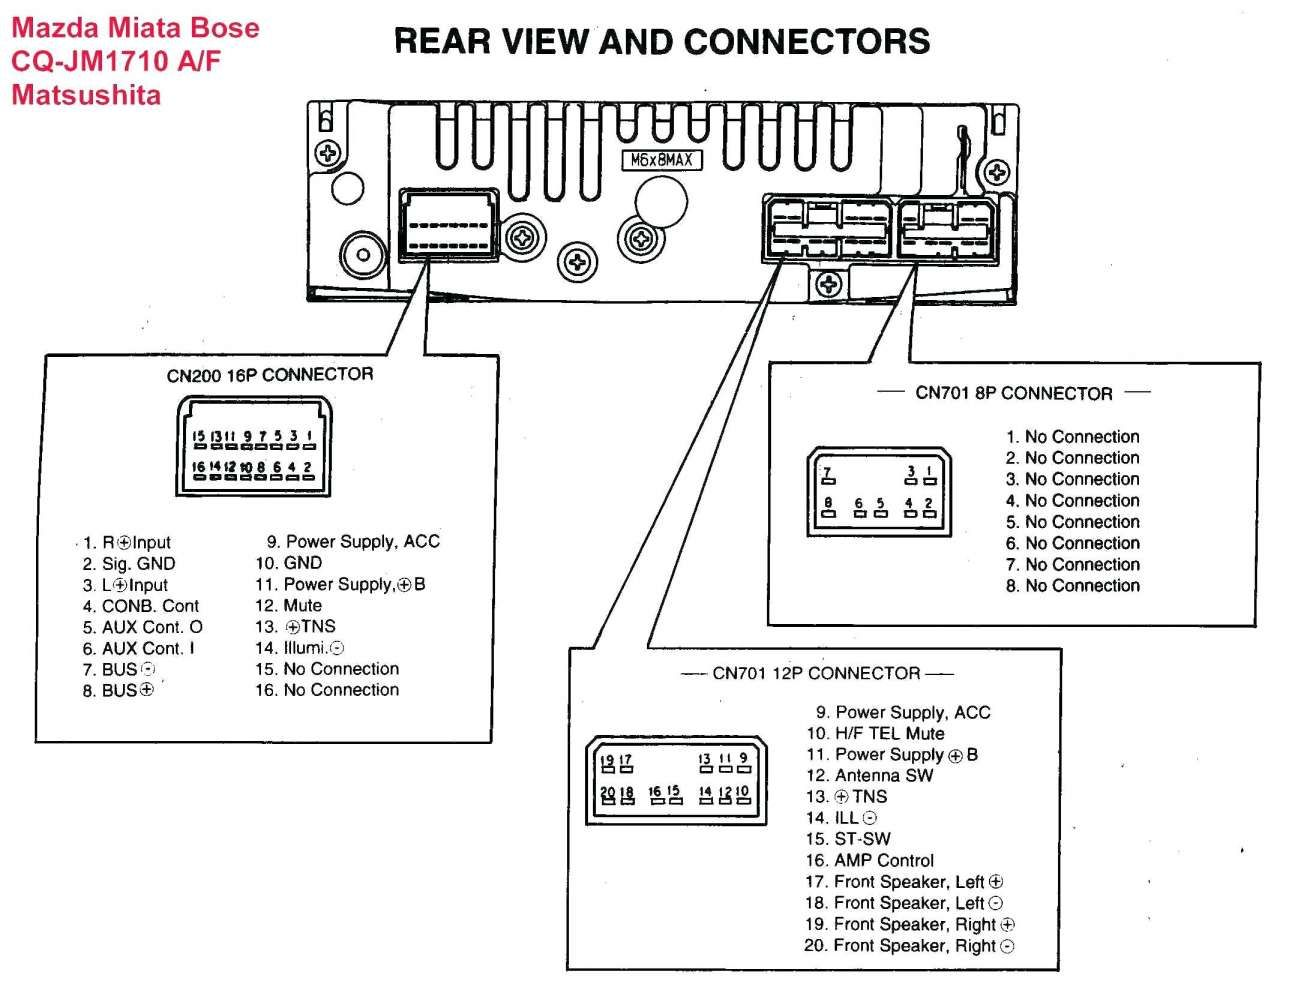 12+ Sony Xplod 50Wx4 Car Stereo Wiring Diagram - Car Diagram - Wiringg.net  in 2020 | Sony car stereo, Car stereo, Trailer wiring diagramPinterest